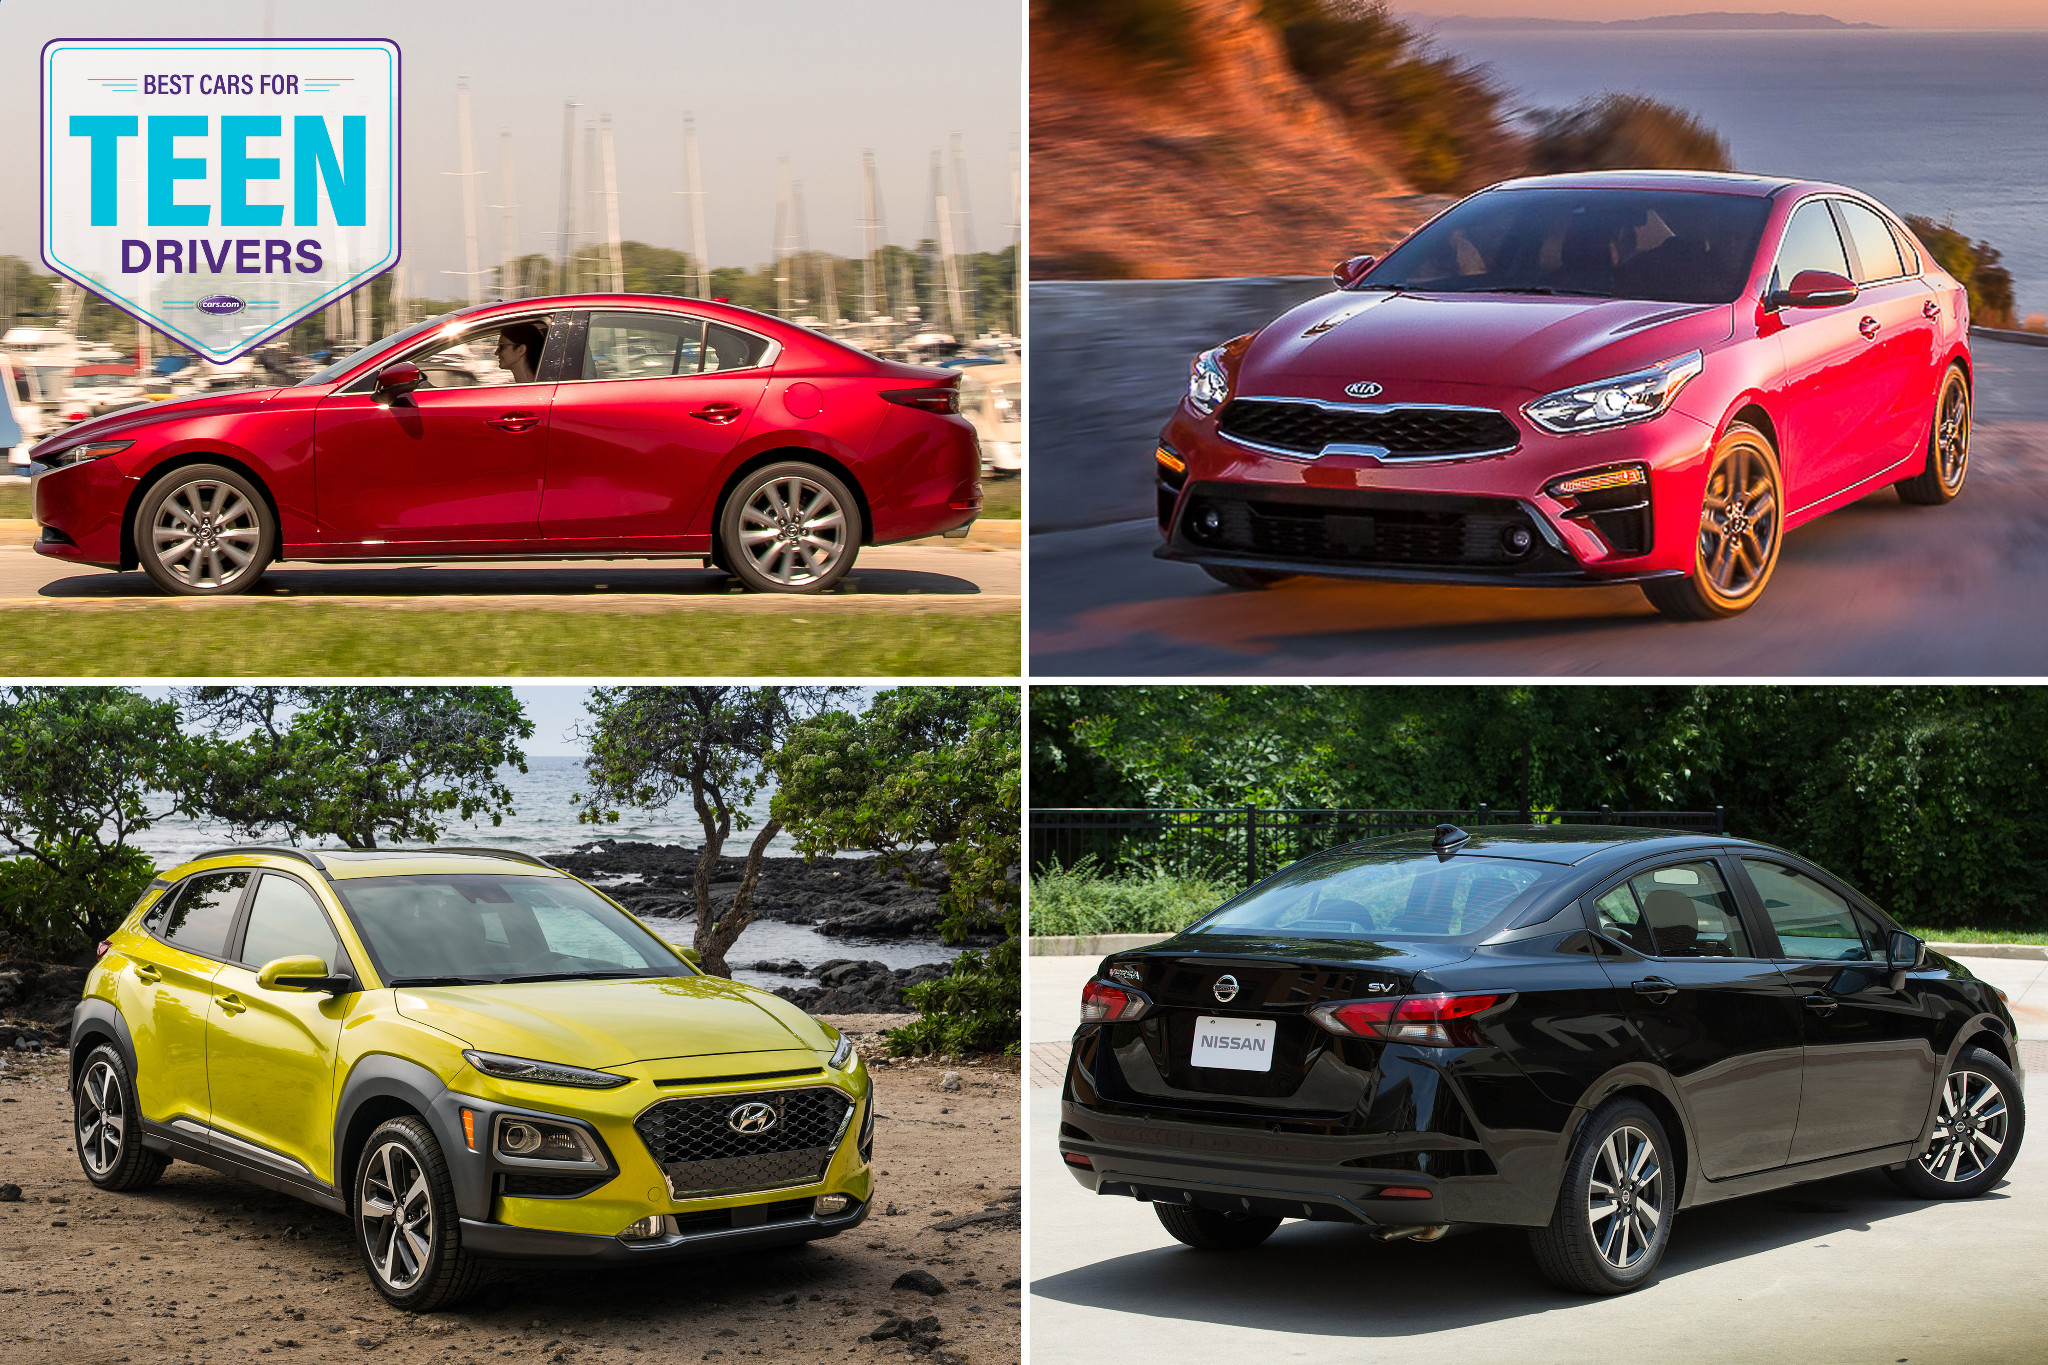 Best 2019 Cars for Teen Drivers